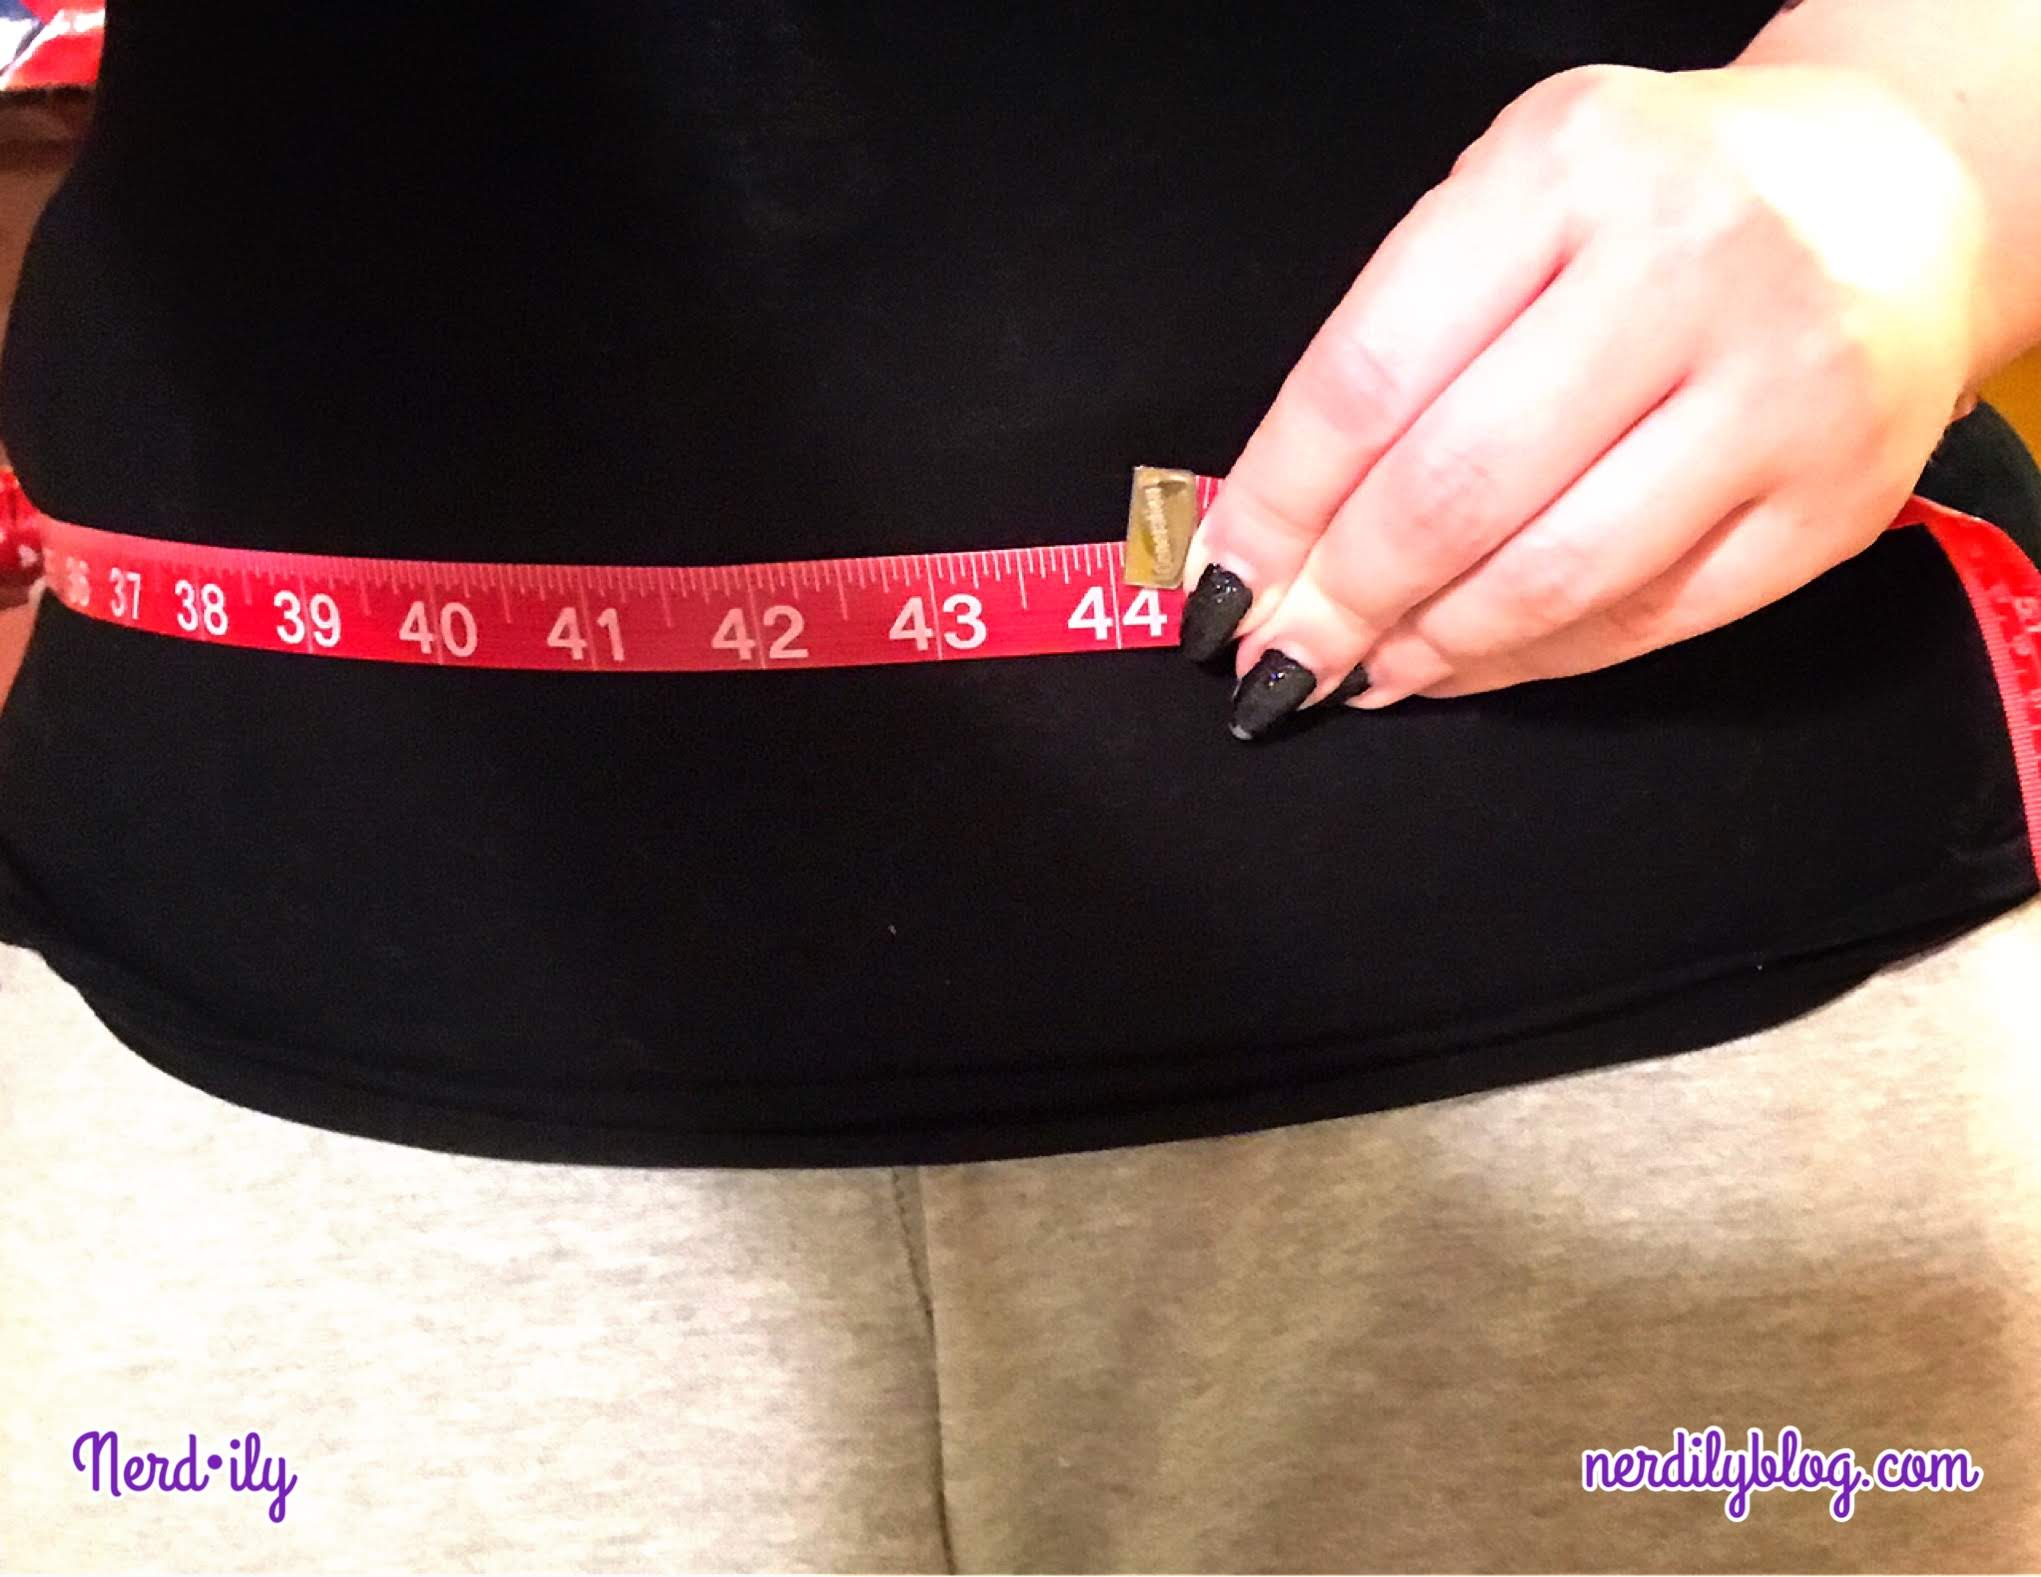 Measuring tape around lower waist of body.